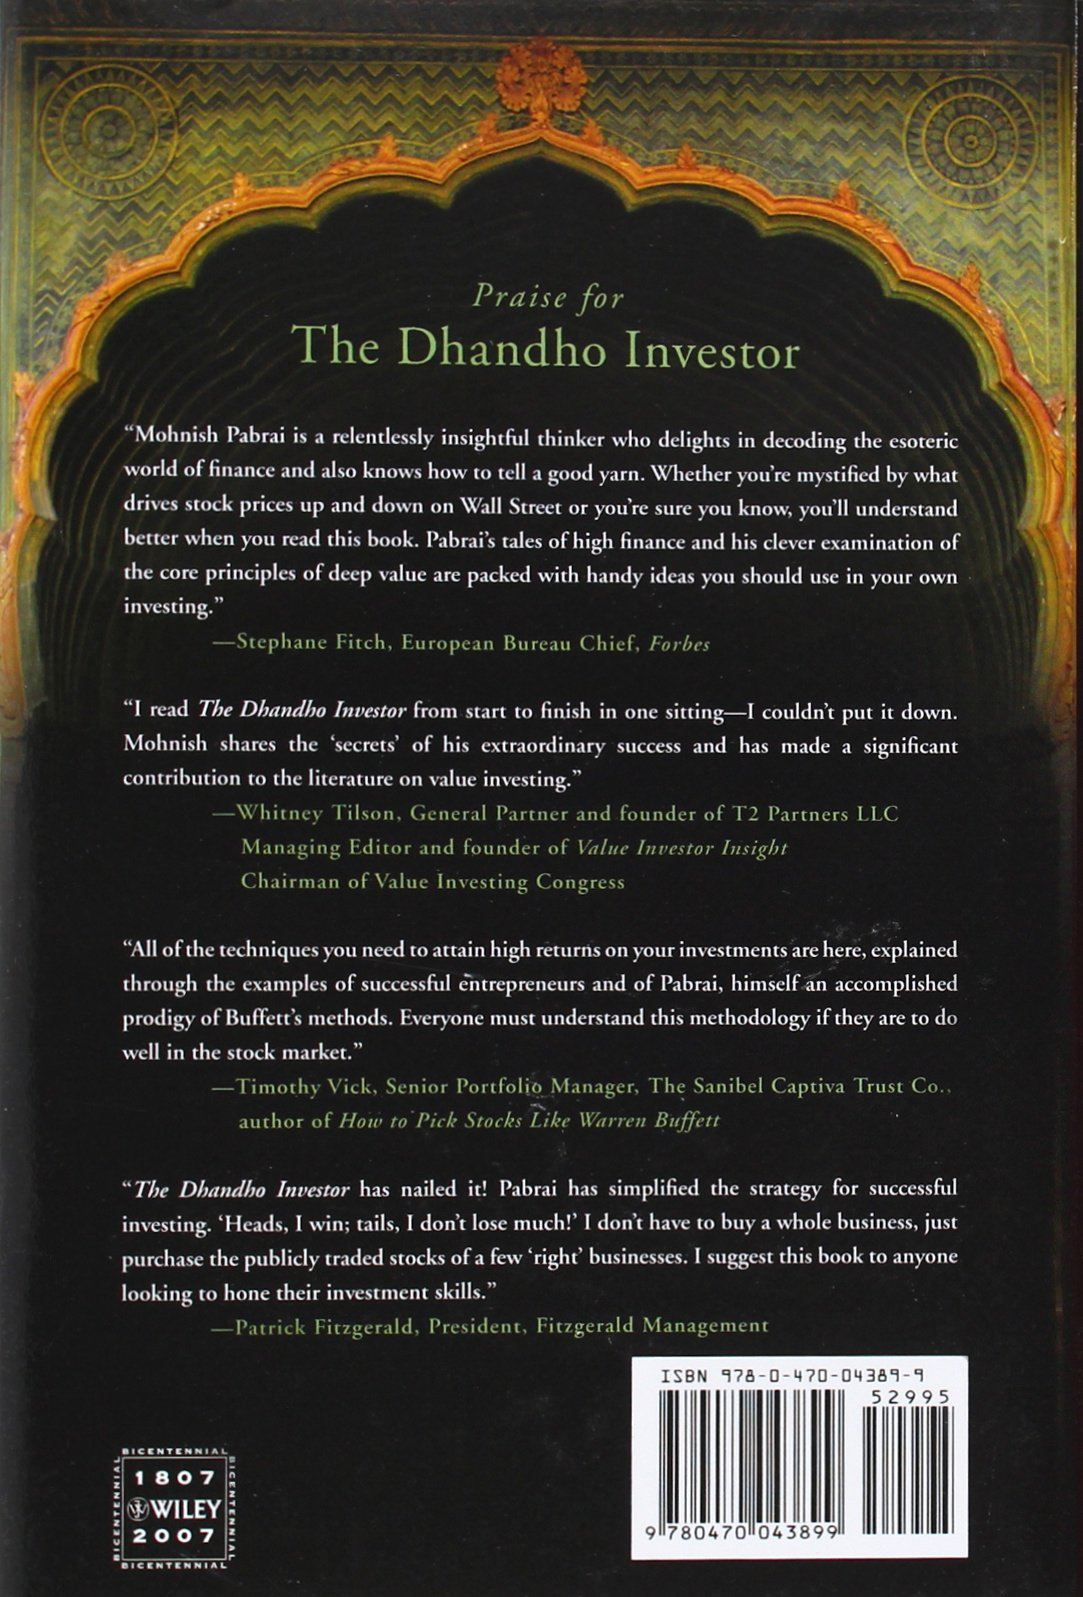 The Dhandho Investor: The Low Risk Value Method To High Returns: Mohnish  Pabrai: 9780470043899: Amazon.com: Books